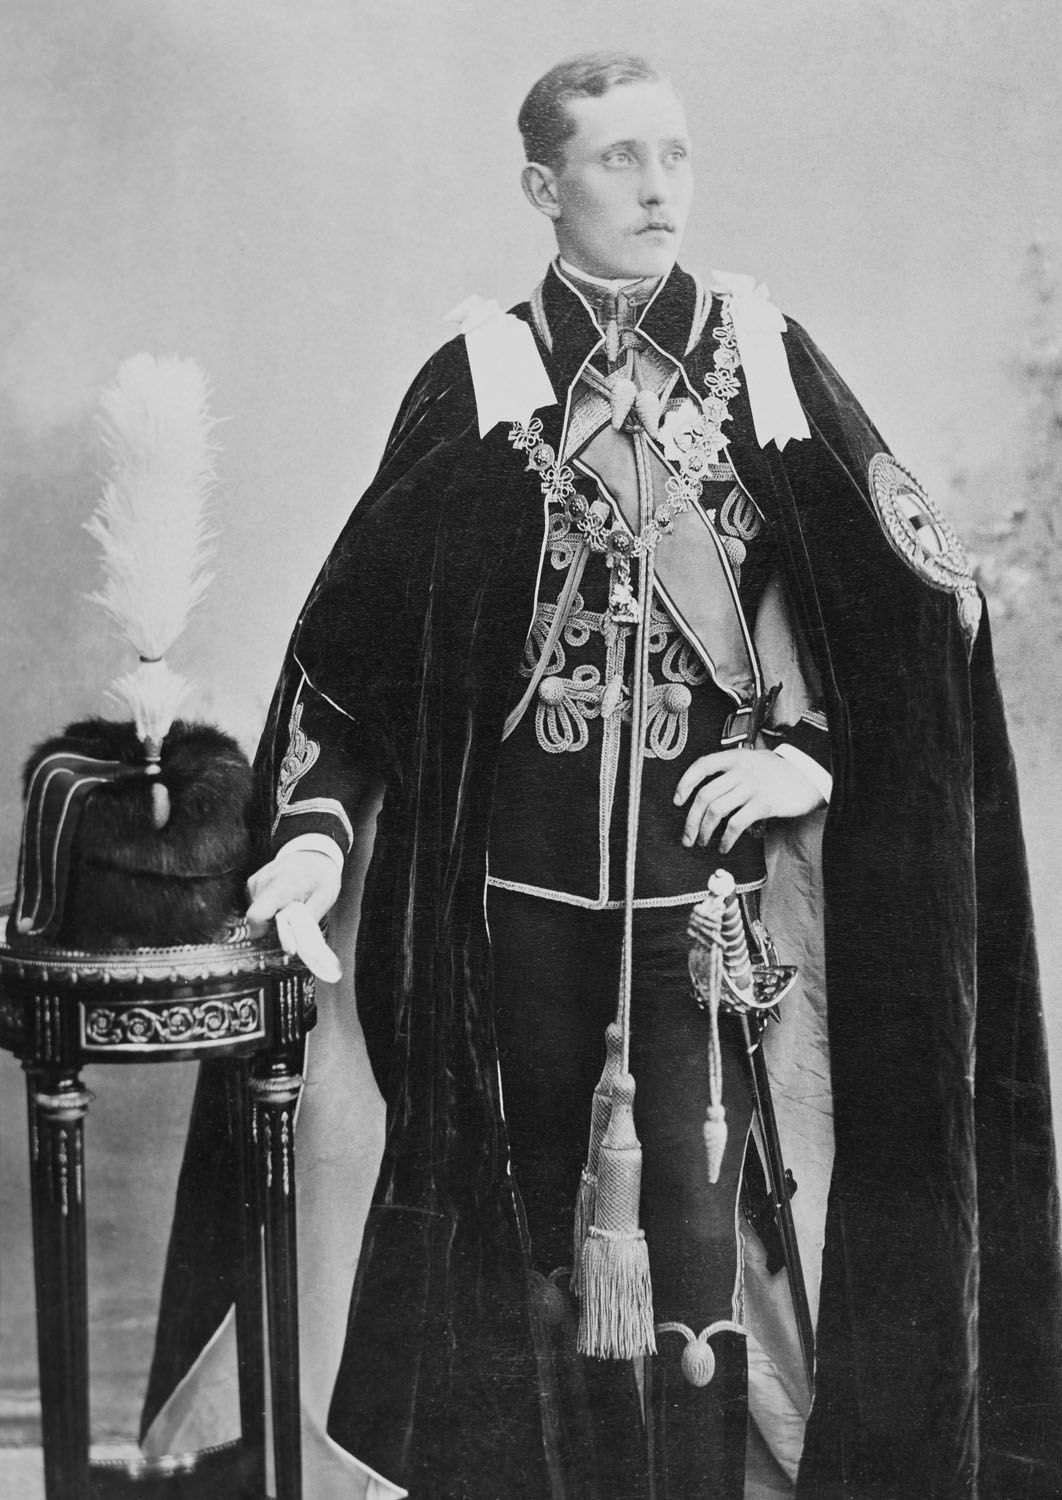 Prince Arthur of Connaught (1883-1938) | Royal Collection Trust